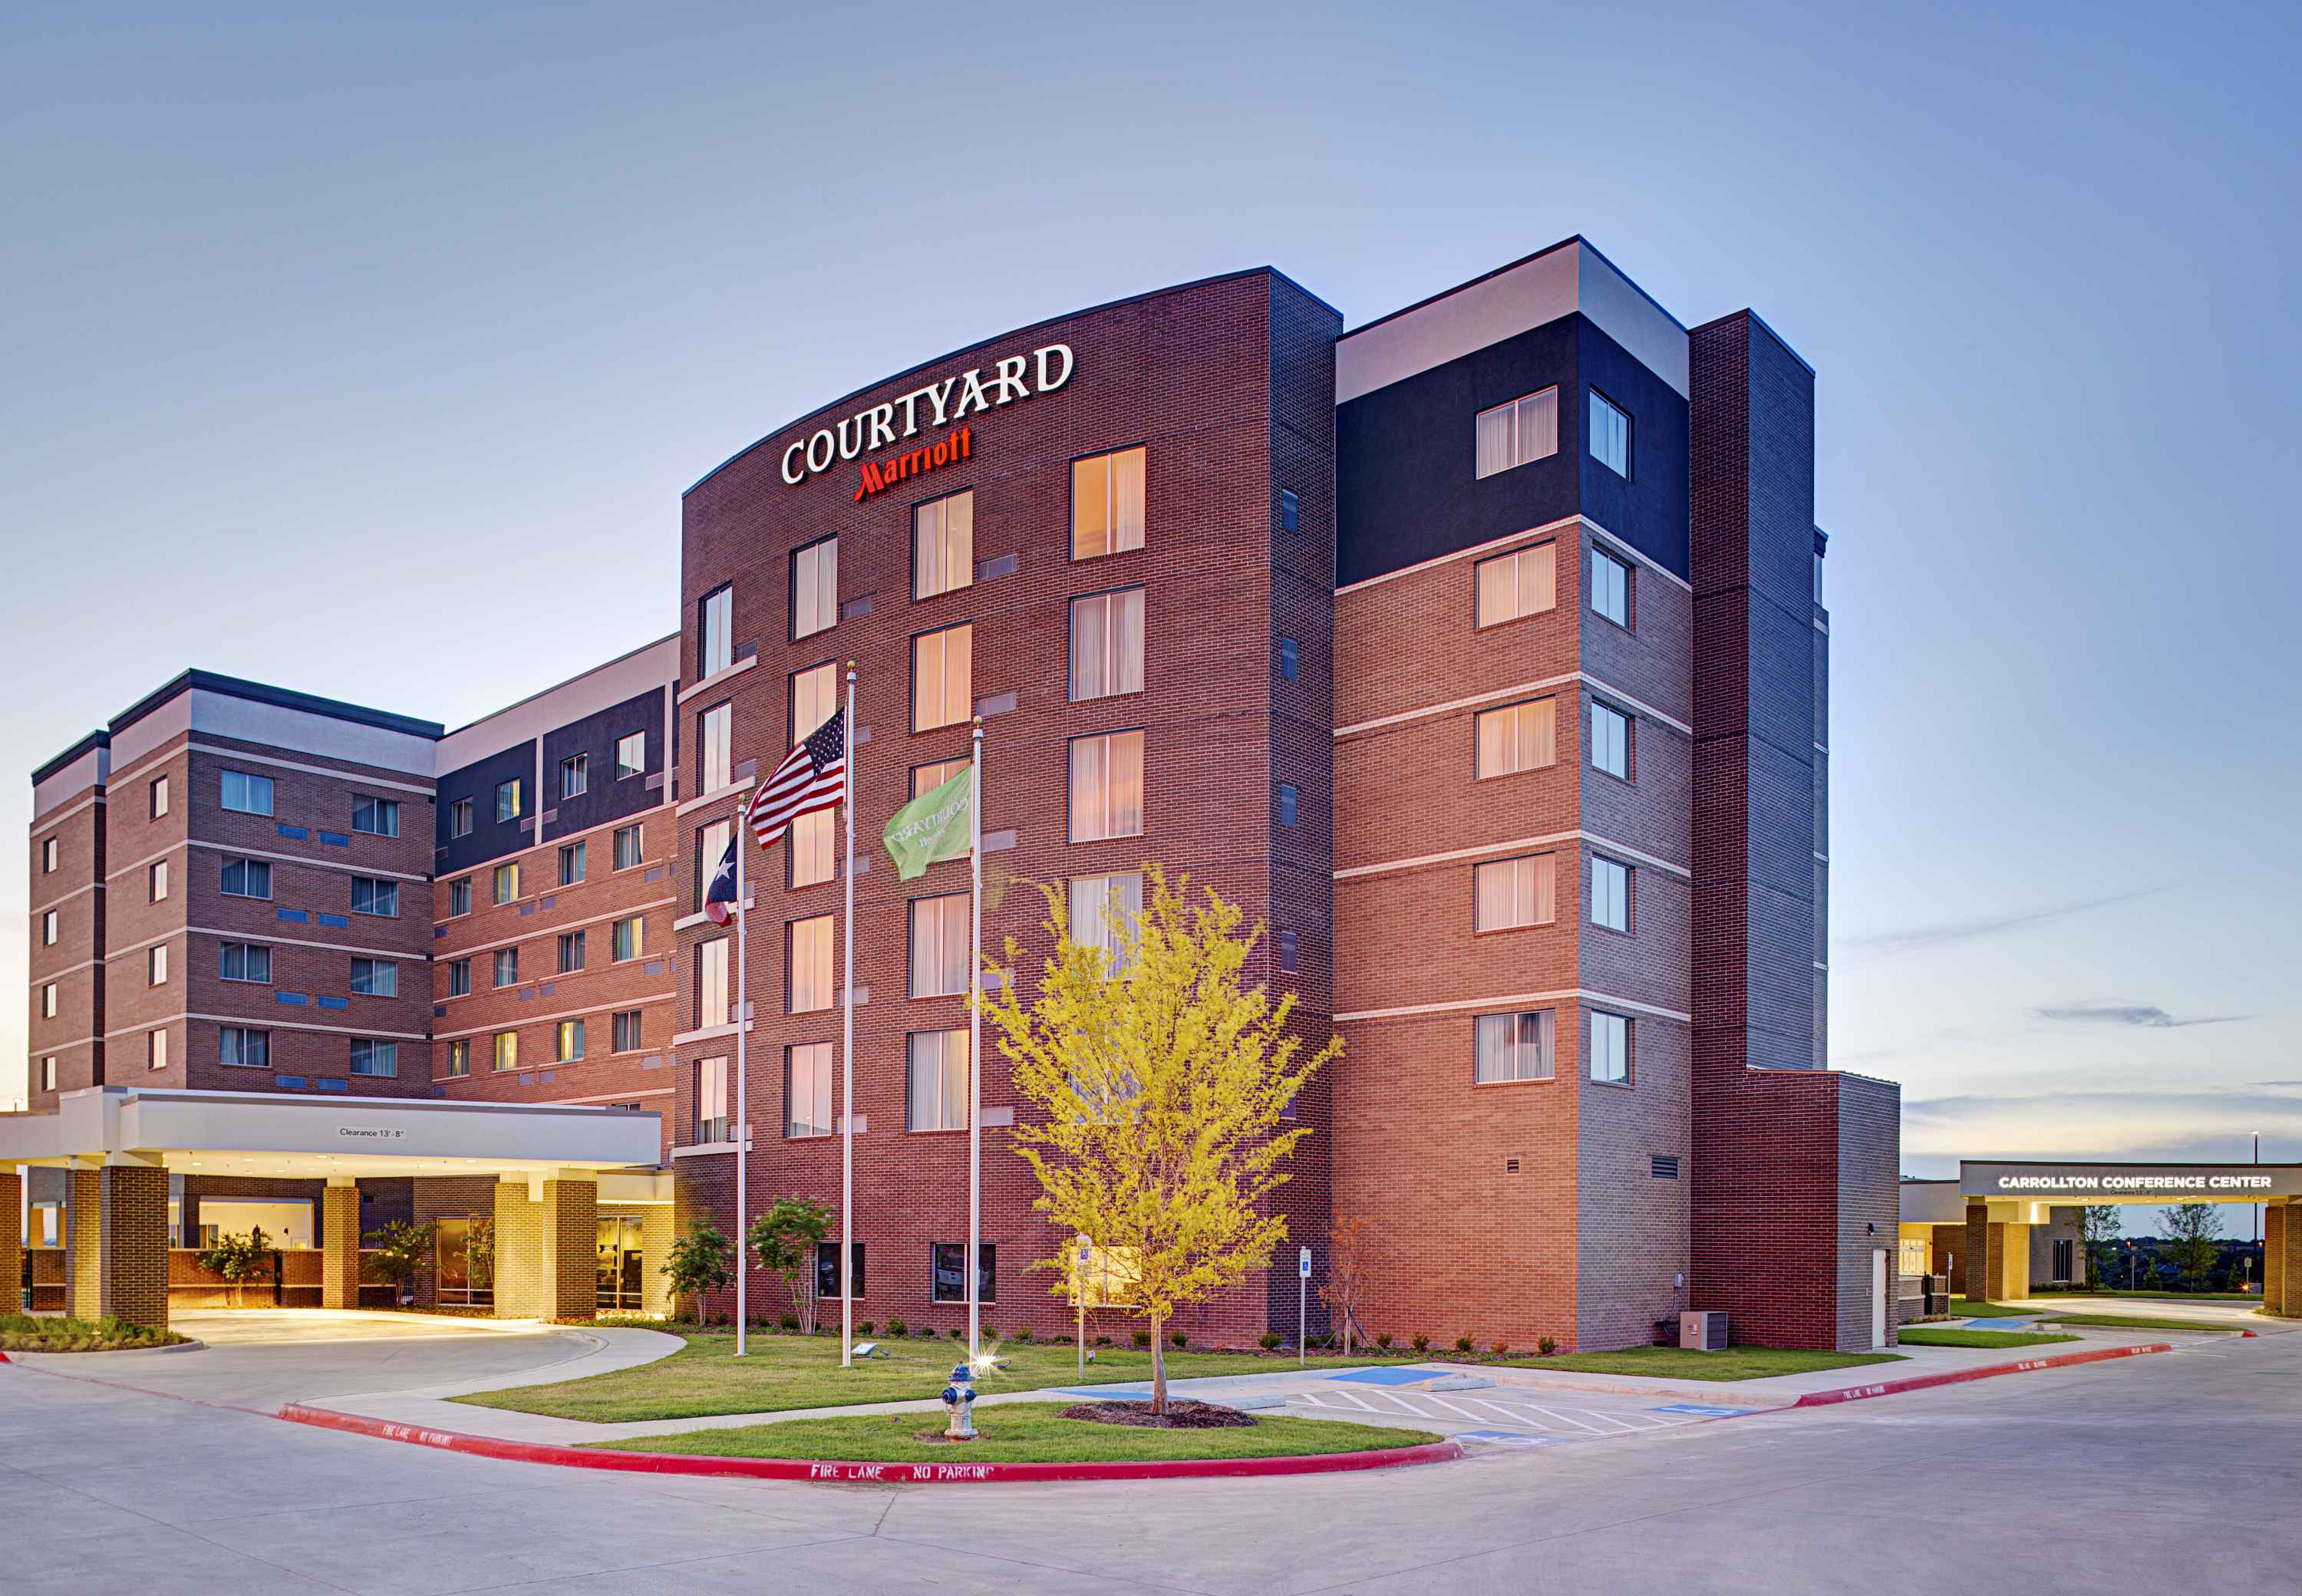 Courtyard by Marriott Dallas Carrollton and Carrollton Conference Center image 9